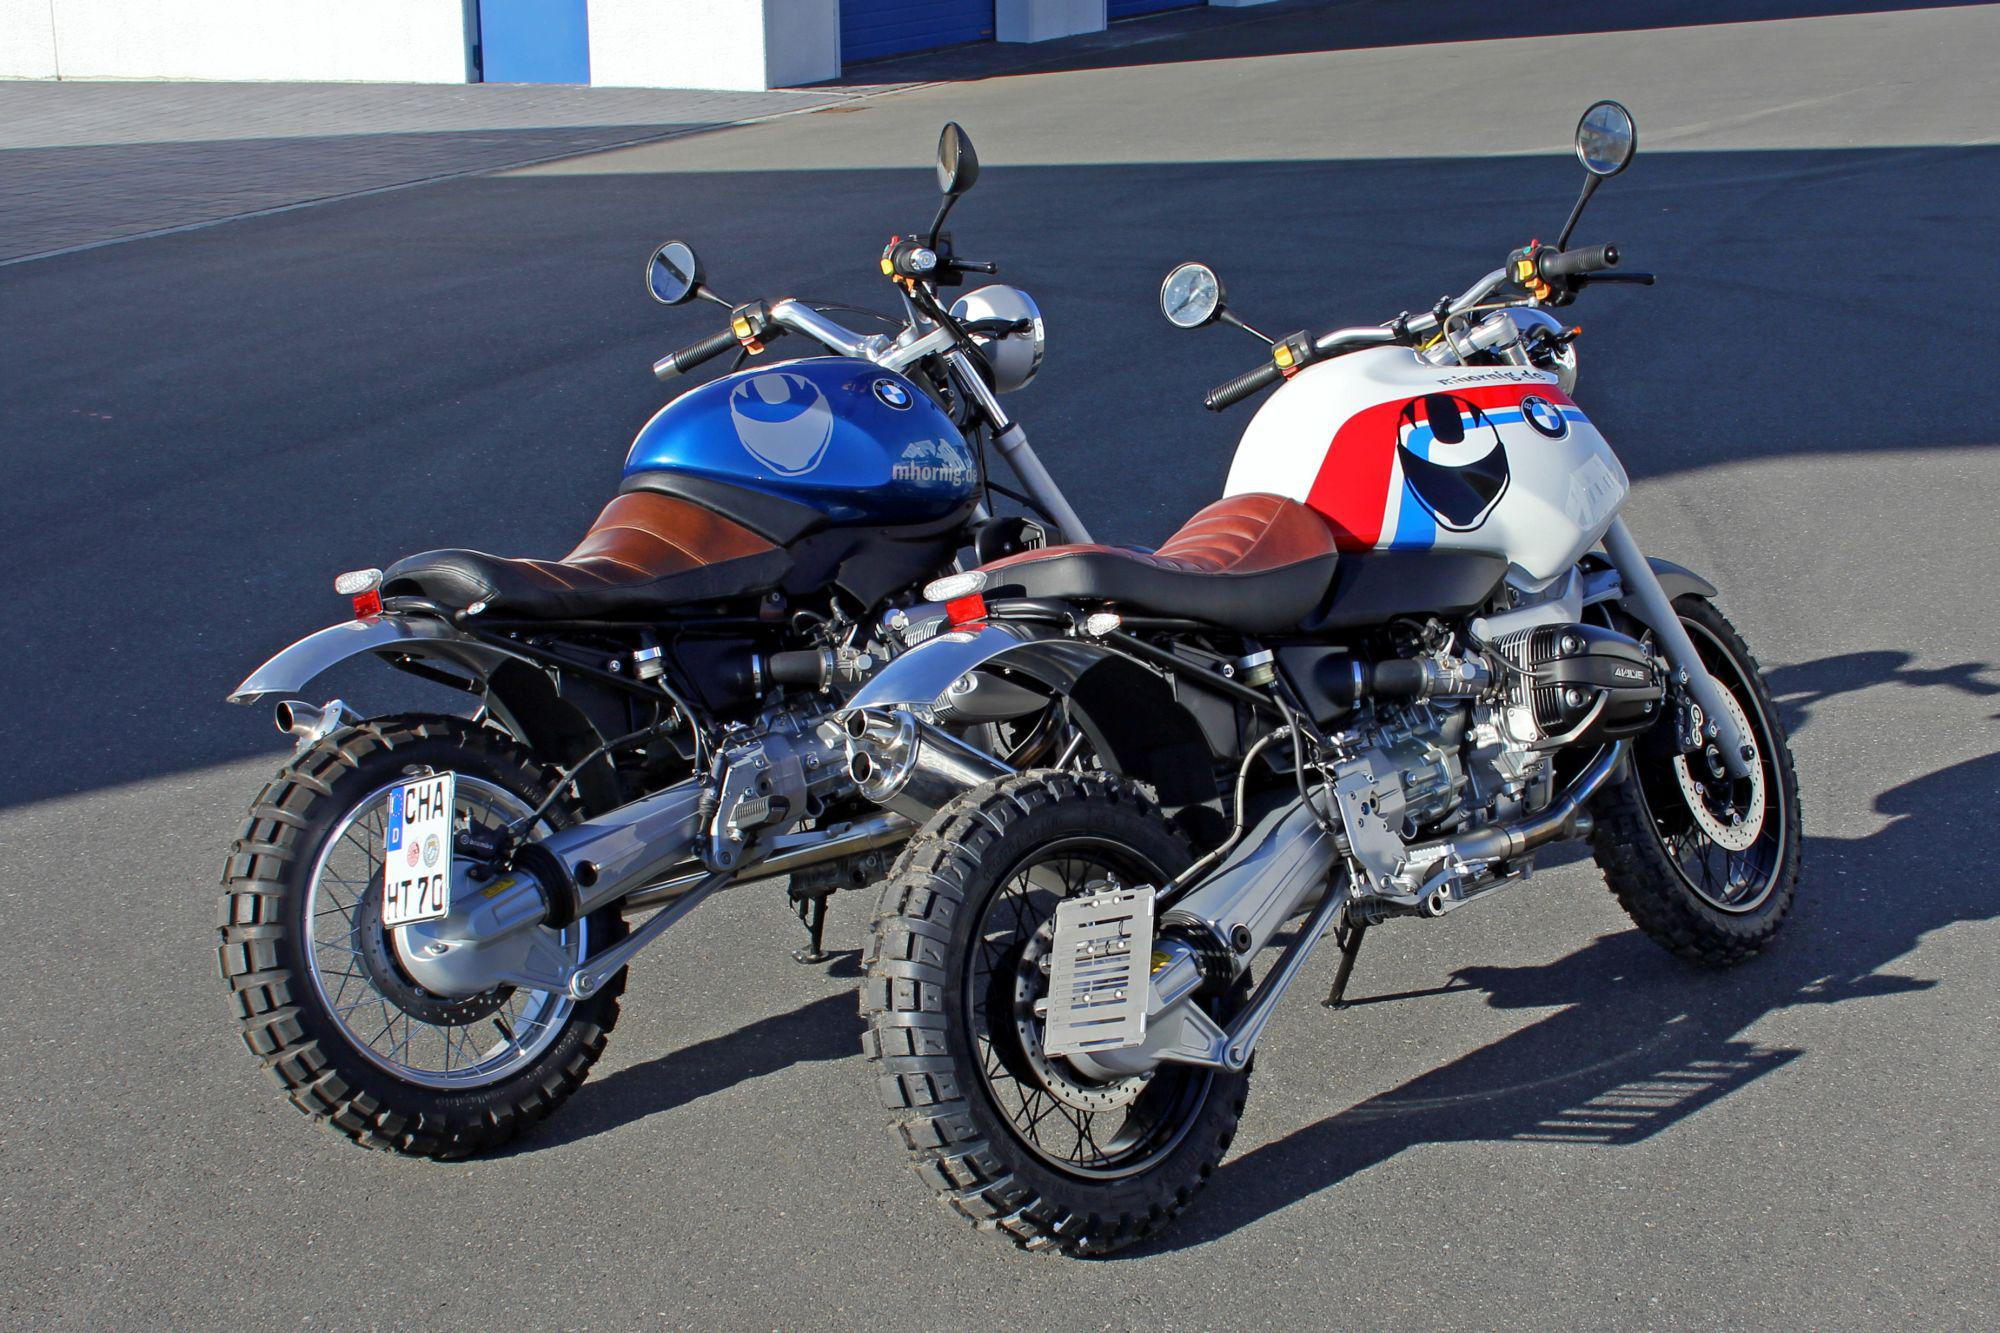 hornig bmw r 1100 gs scrambler umbau 2015 motorrad fotos. Black Bedroom Furniture Sets. Home Design Ideas